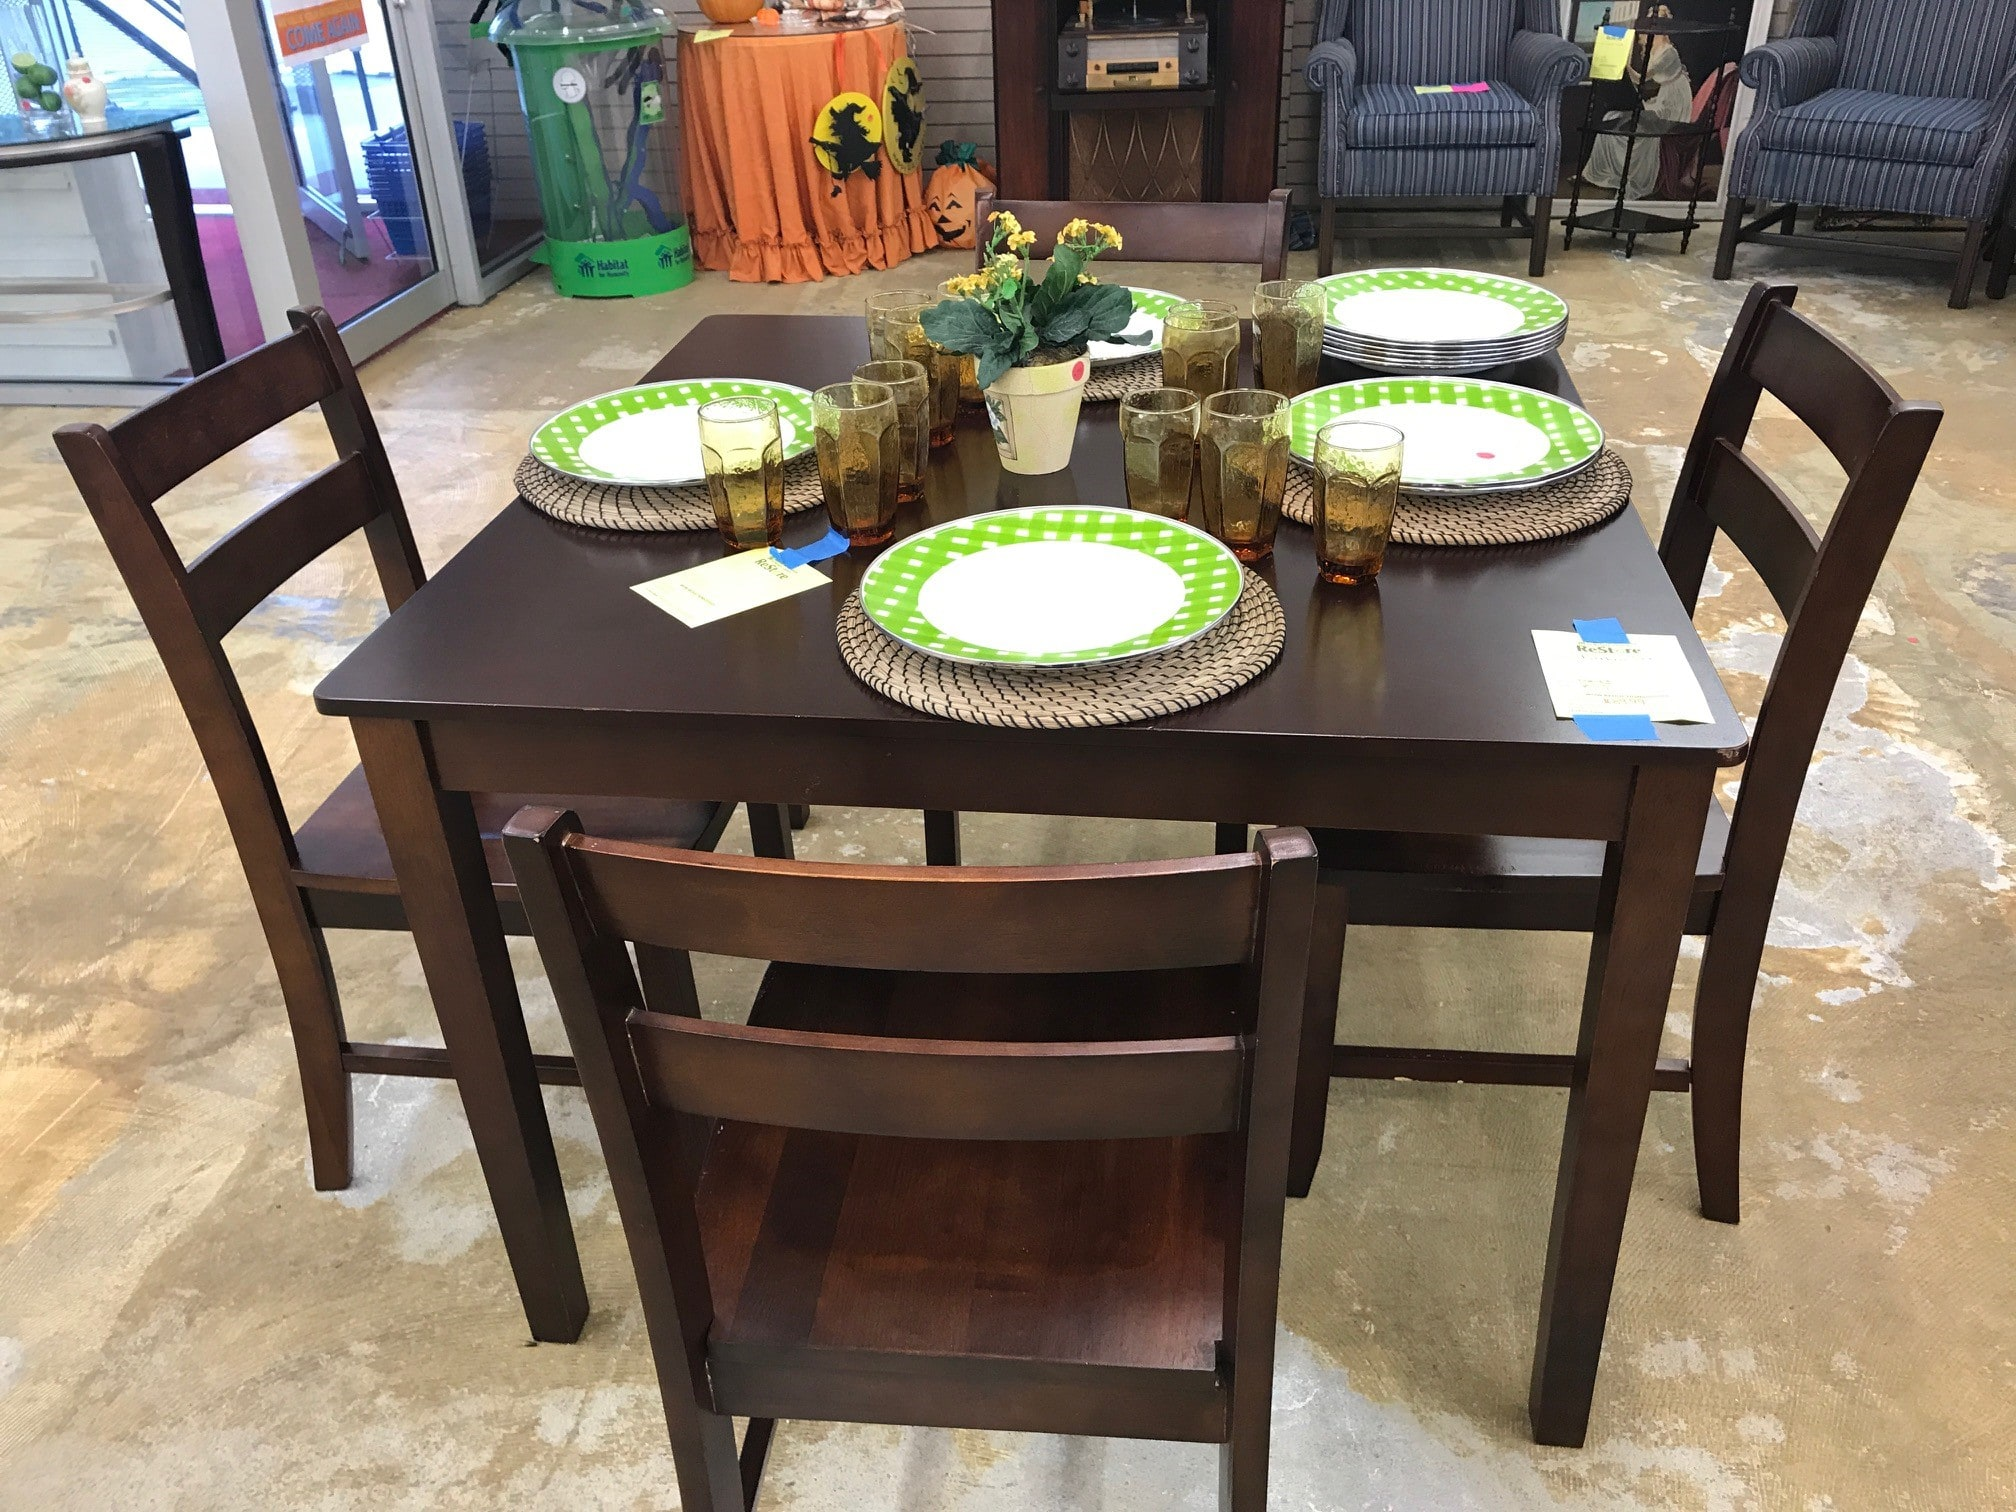 Habitat ReStore Bergen NJ - Dining Room Table (2)-min.jpg